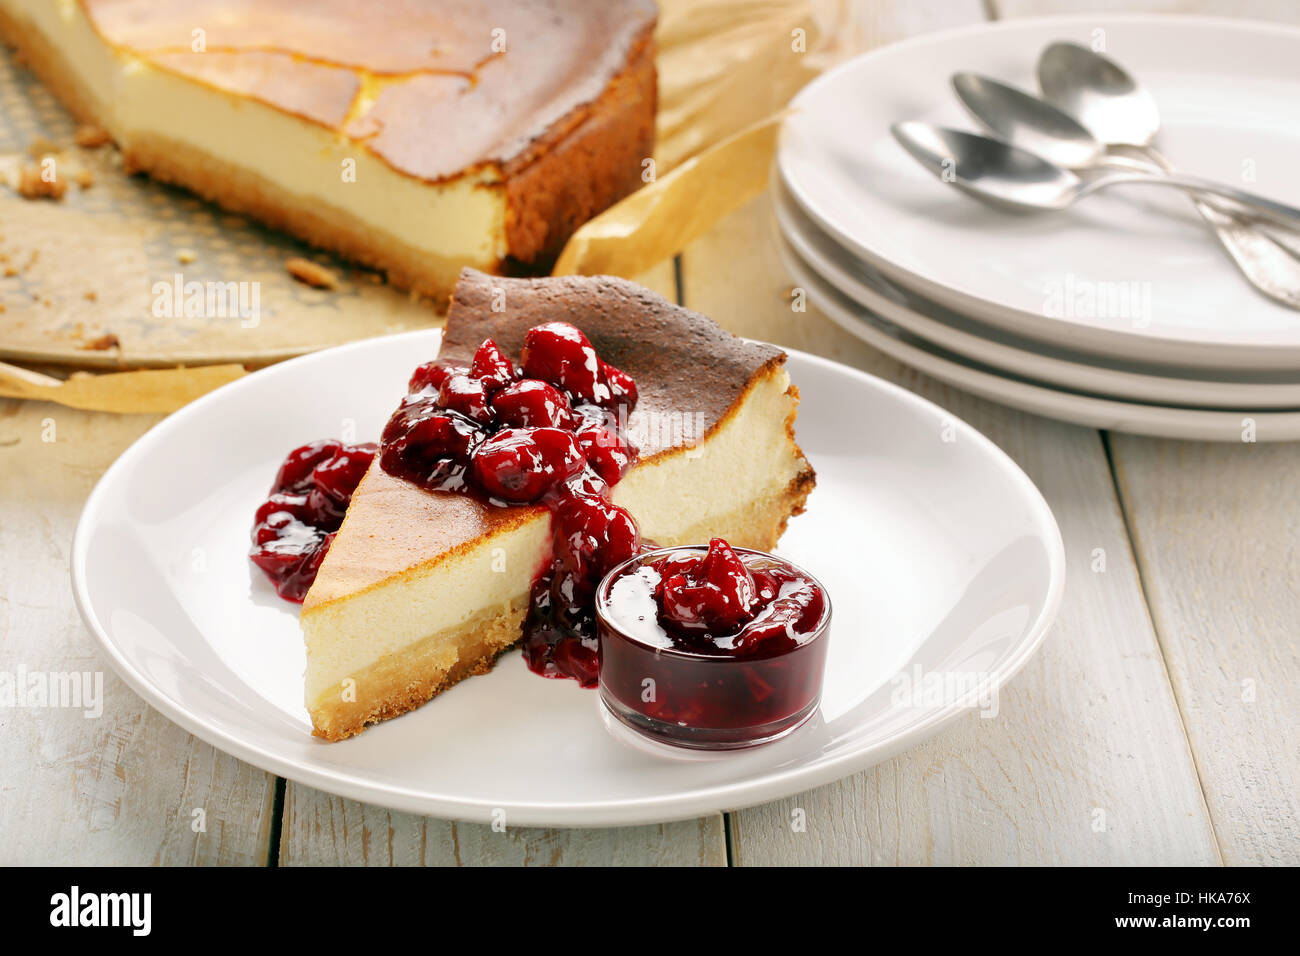 Cheesecake slice with cherry jam on wooden background - Stock Image